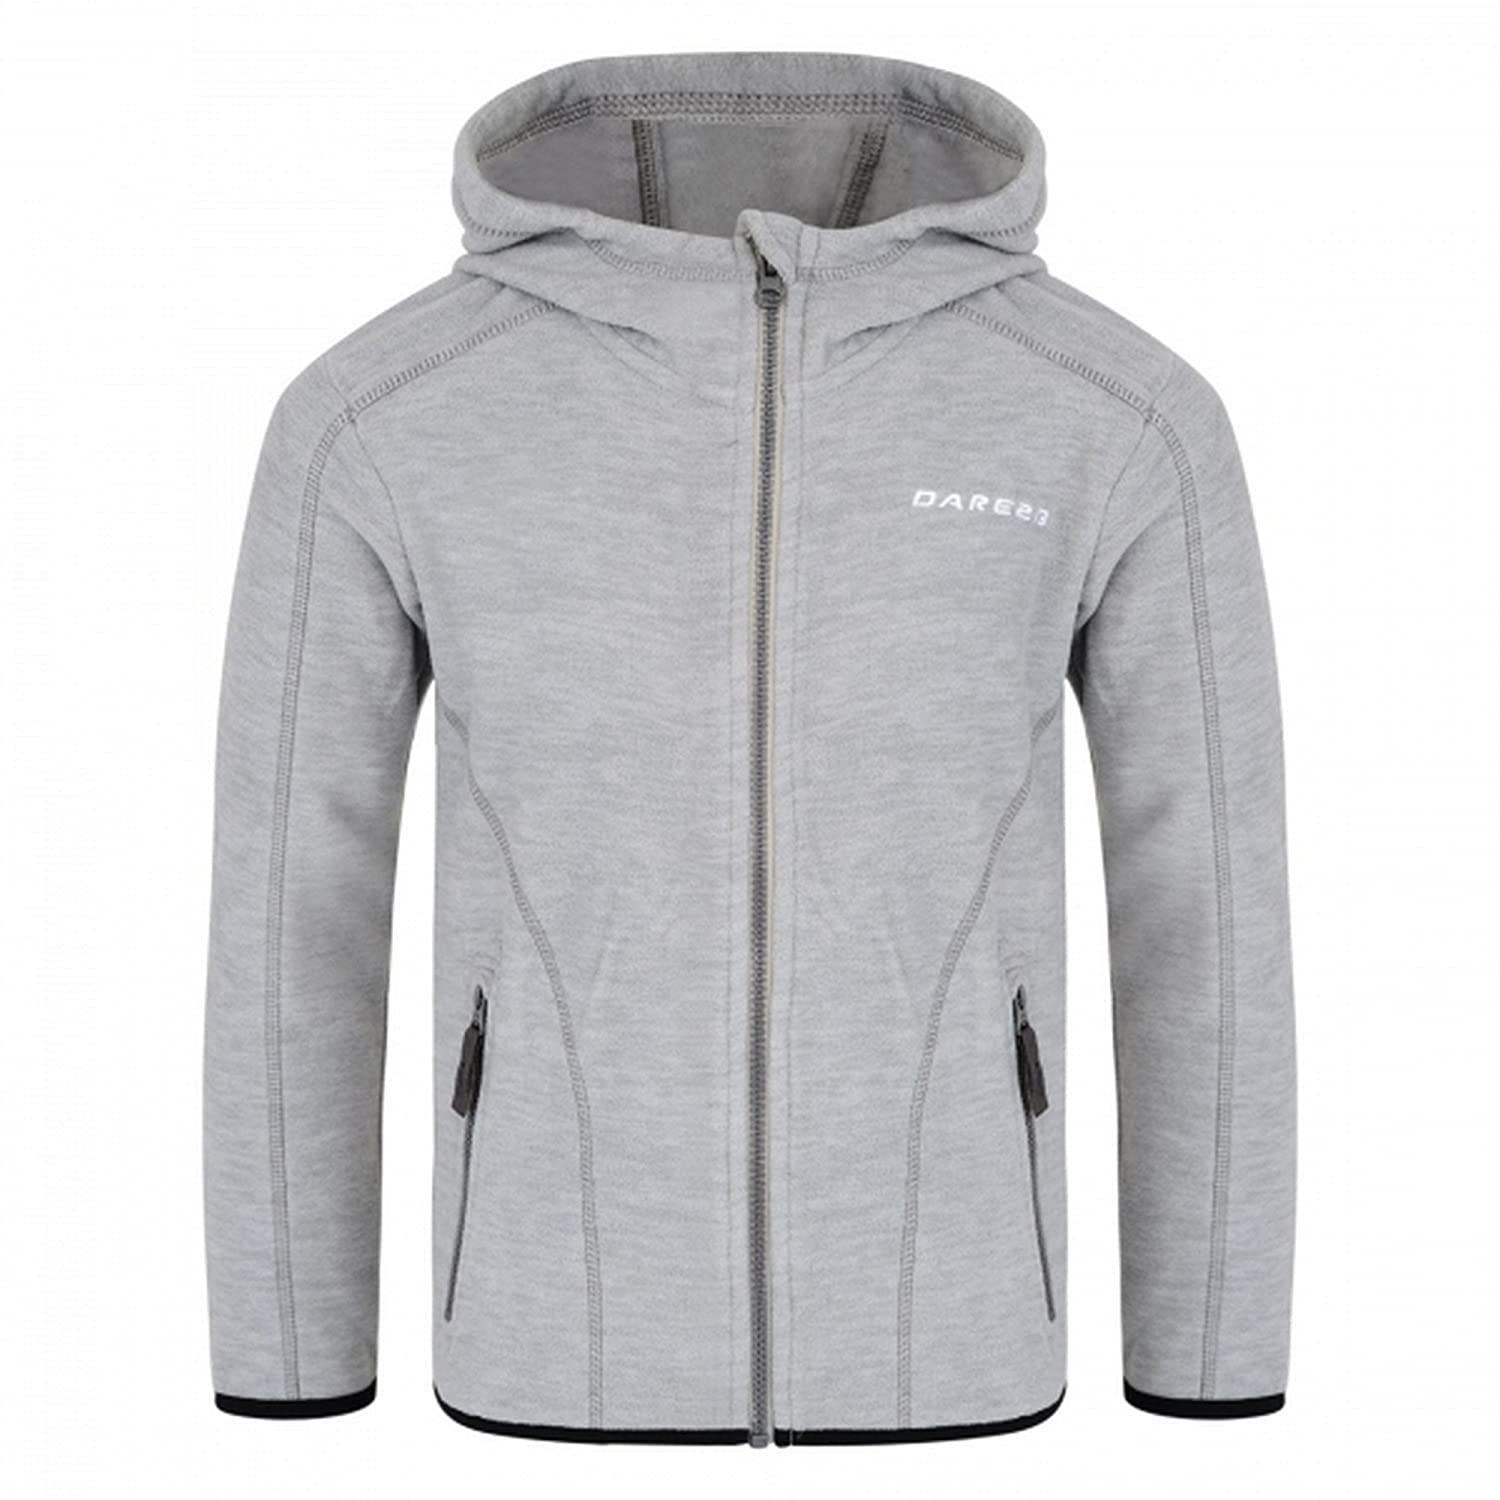 Trespass Kids Shaw Warm Fleece Jacket with Hood 230gsm for Children Boys//Toddlers Ages 2-12 for Walking//Hiking//Trekking//Camping//Outdoor//Snowsports//Skiing//Snowboarding